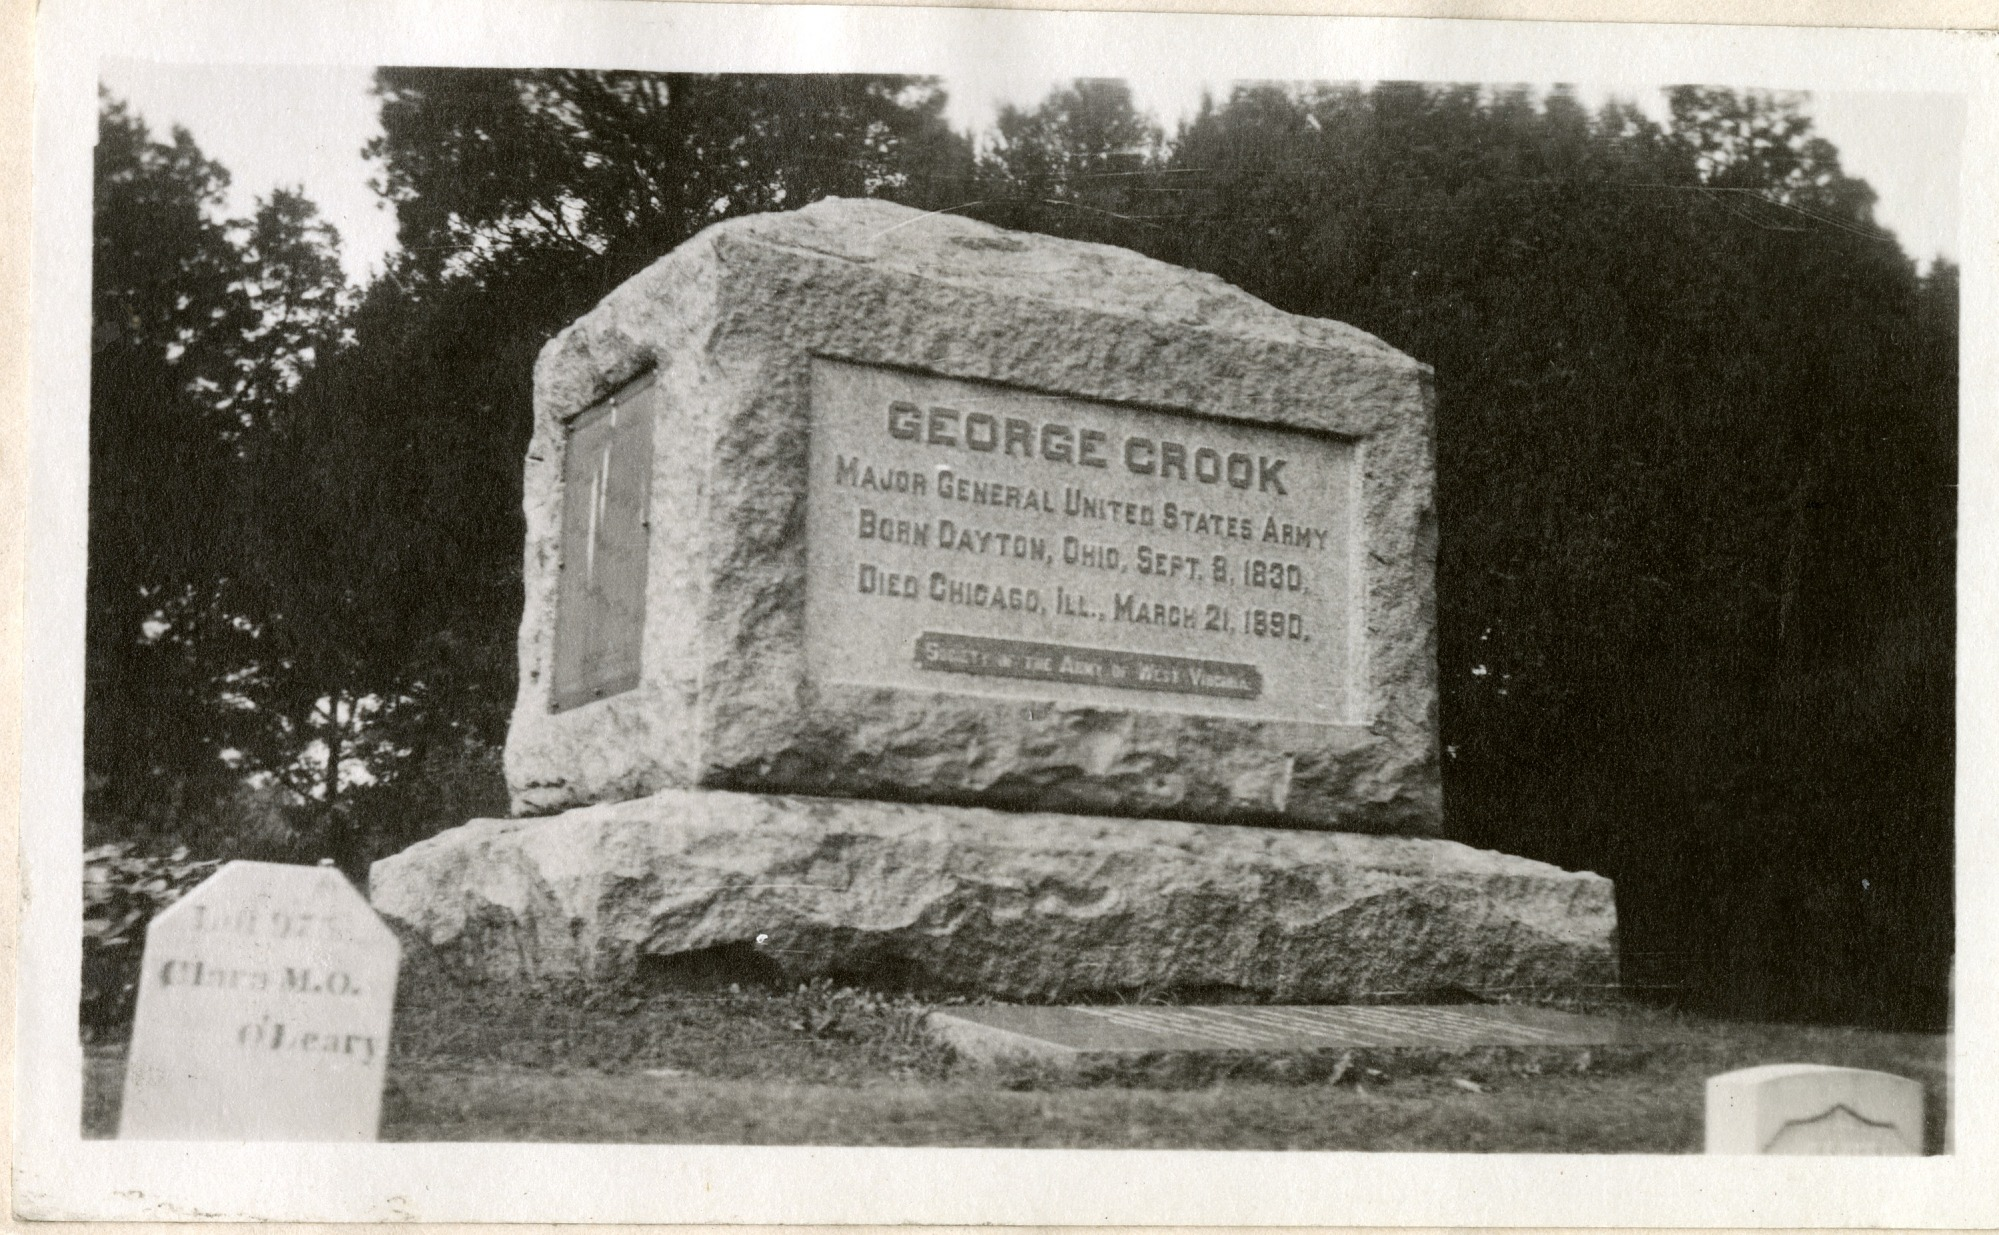 Tombstone of George Crook, Major General United States Army